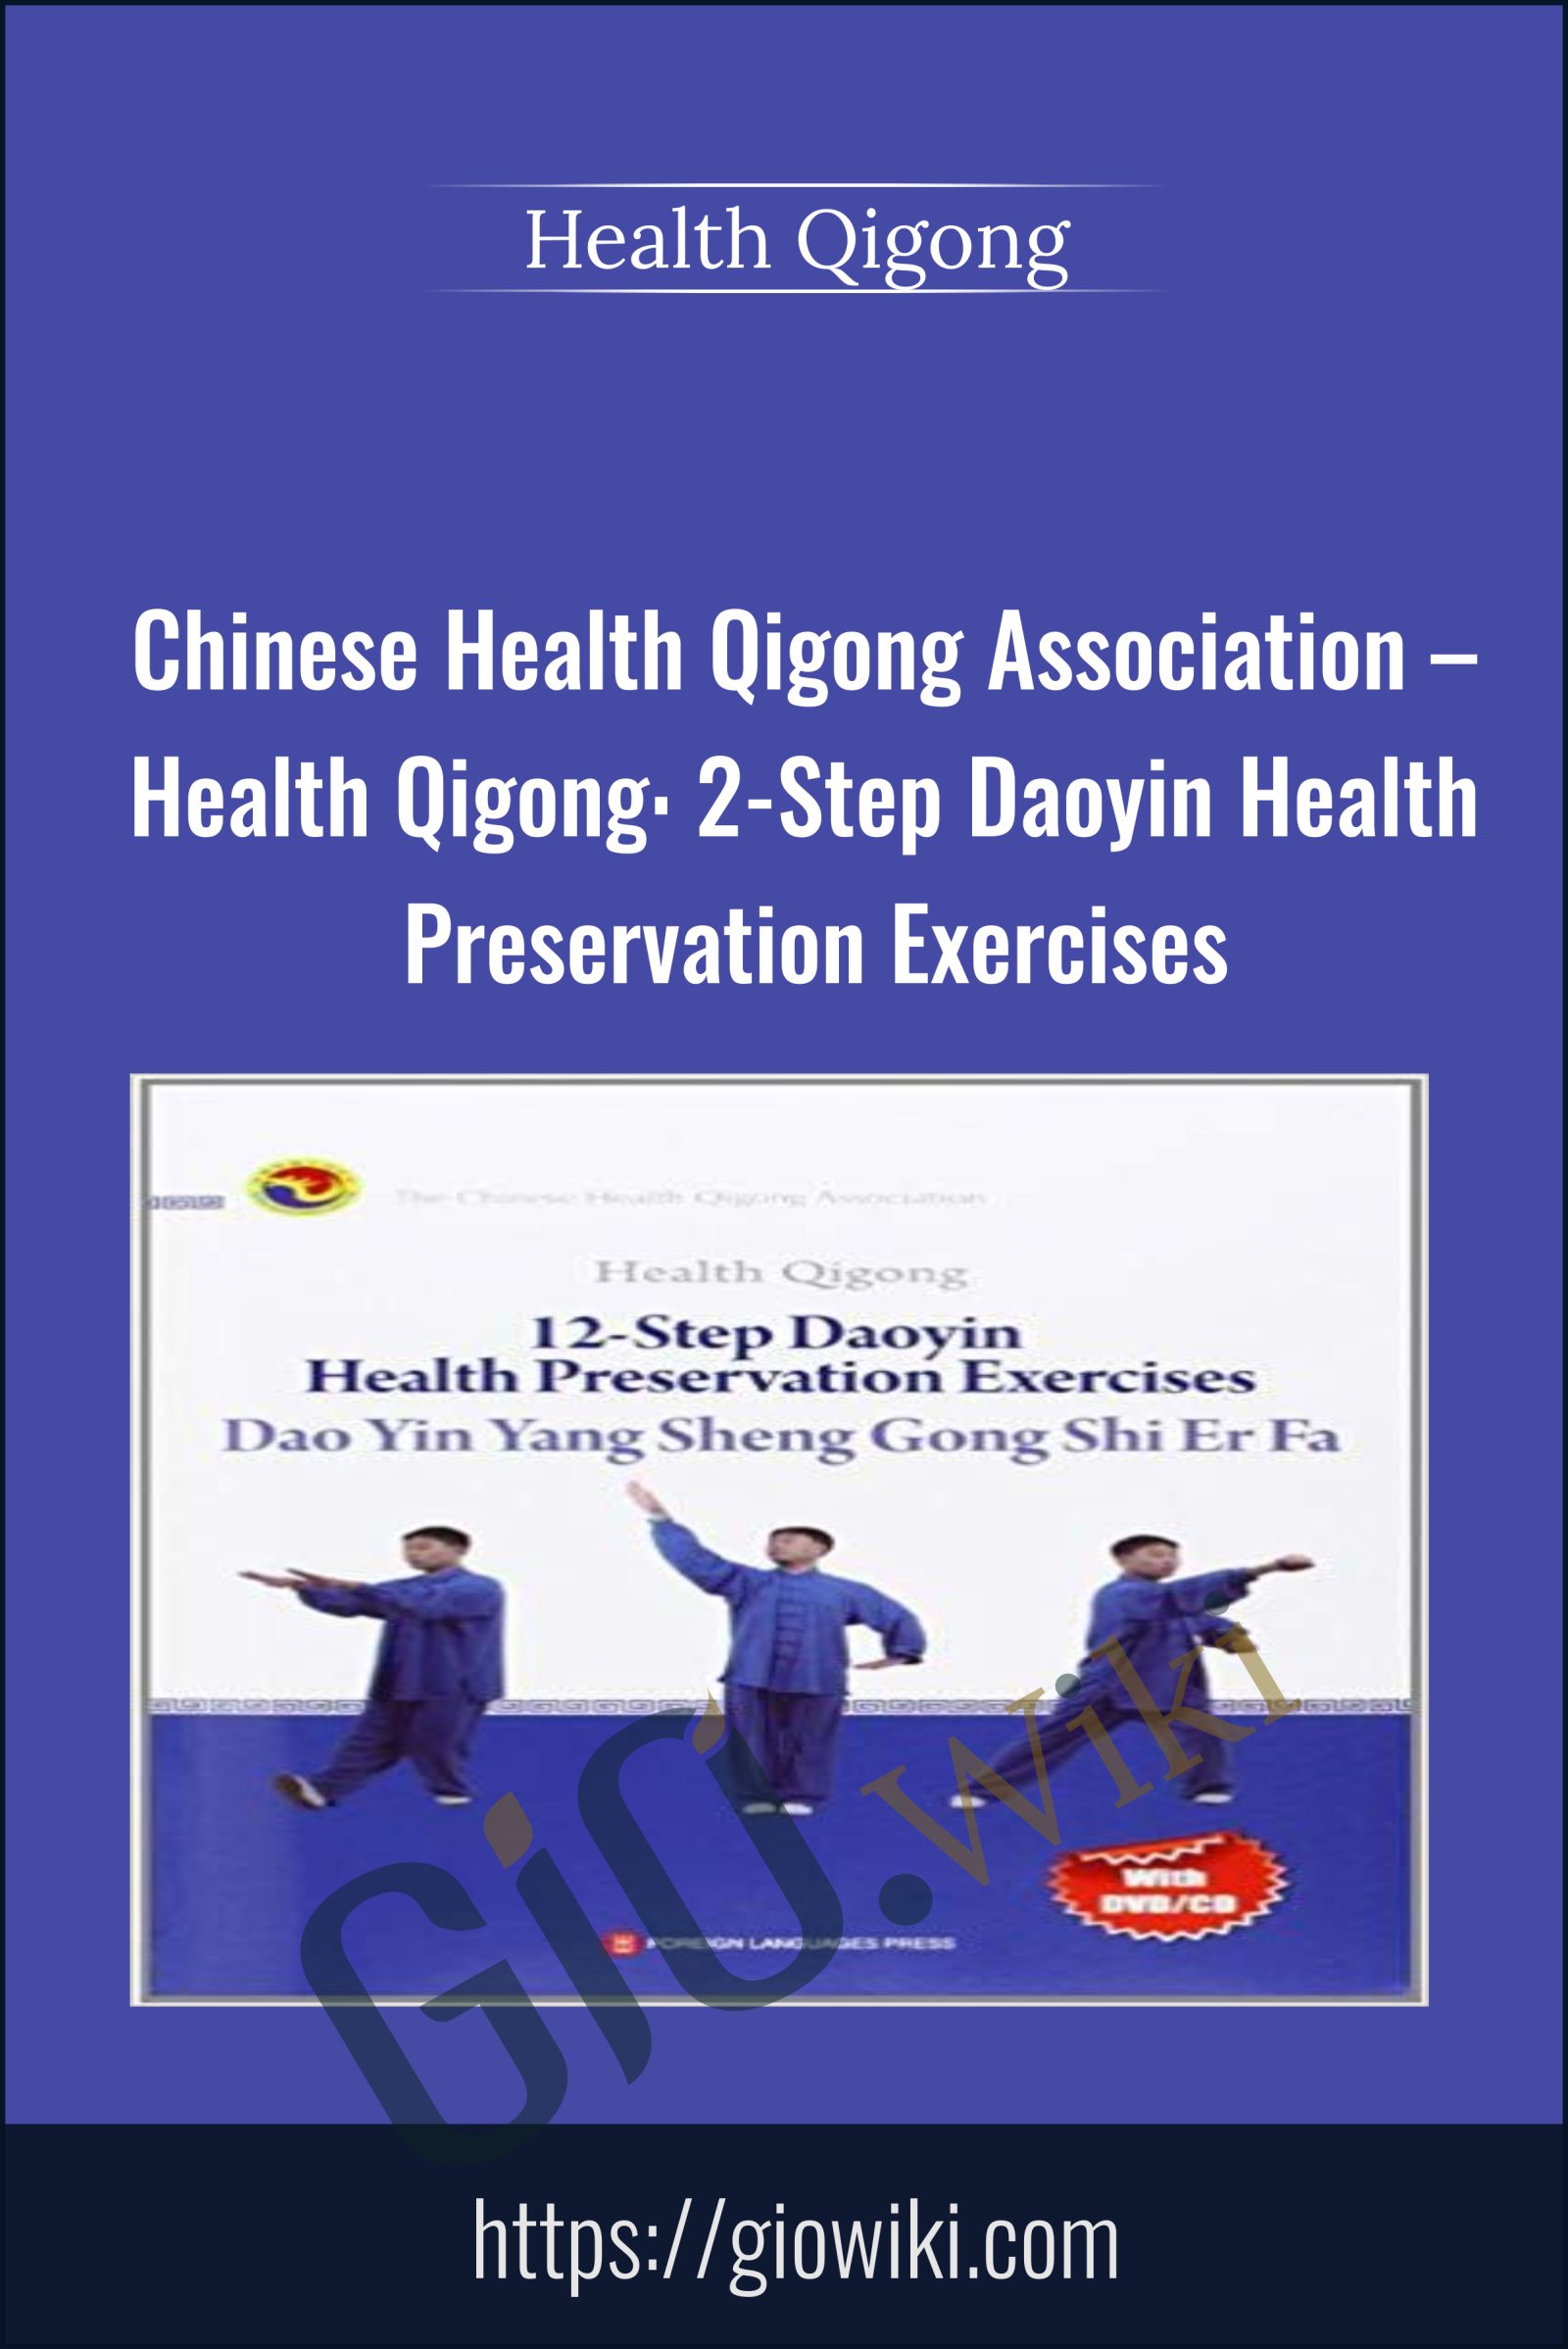 Chinese Health Qigong Association – Health Qigong: 12-Step Daoyin Health Preservation Exercises -  Health Qigong